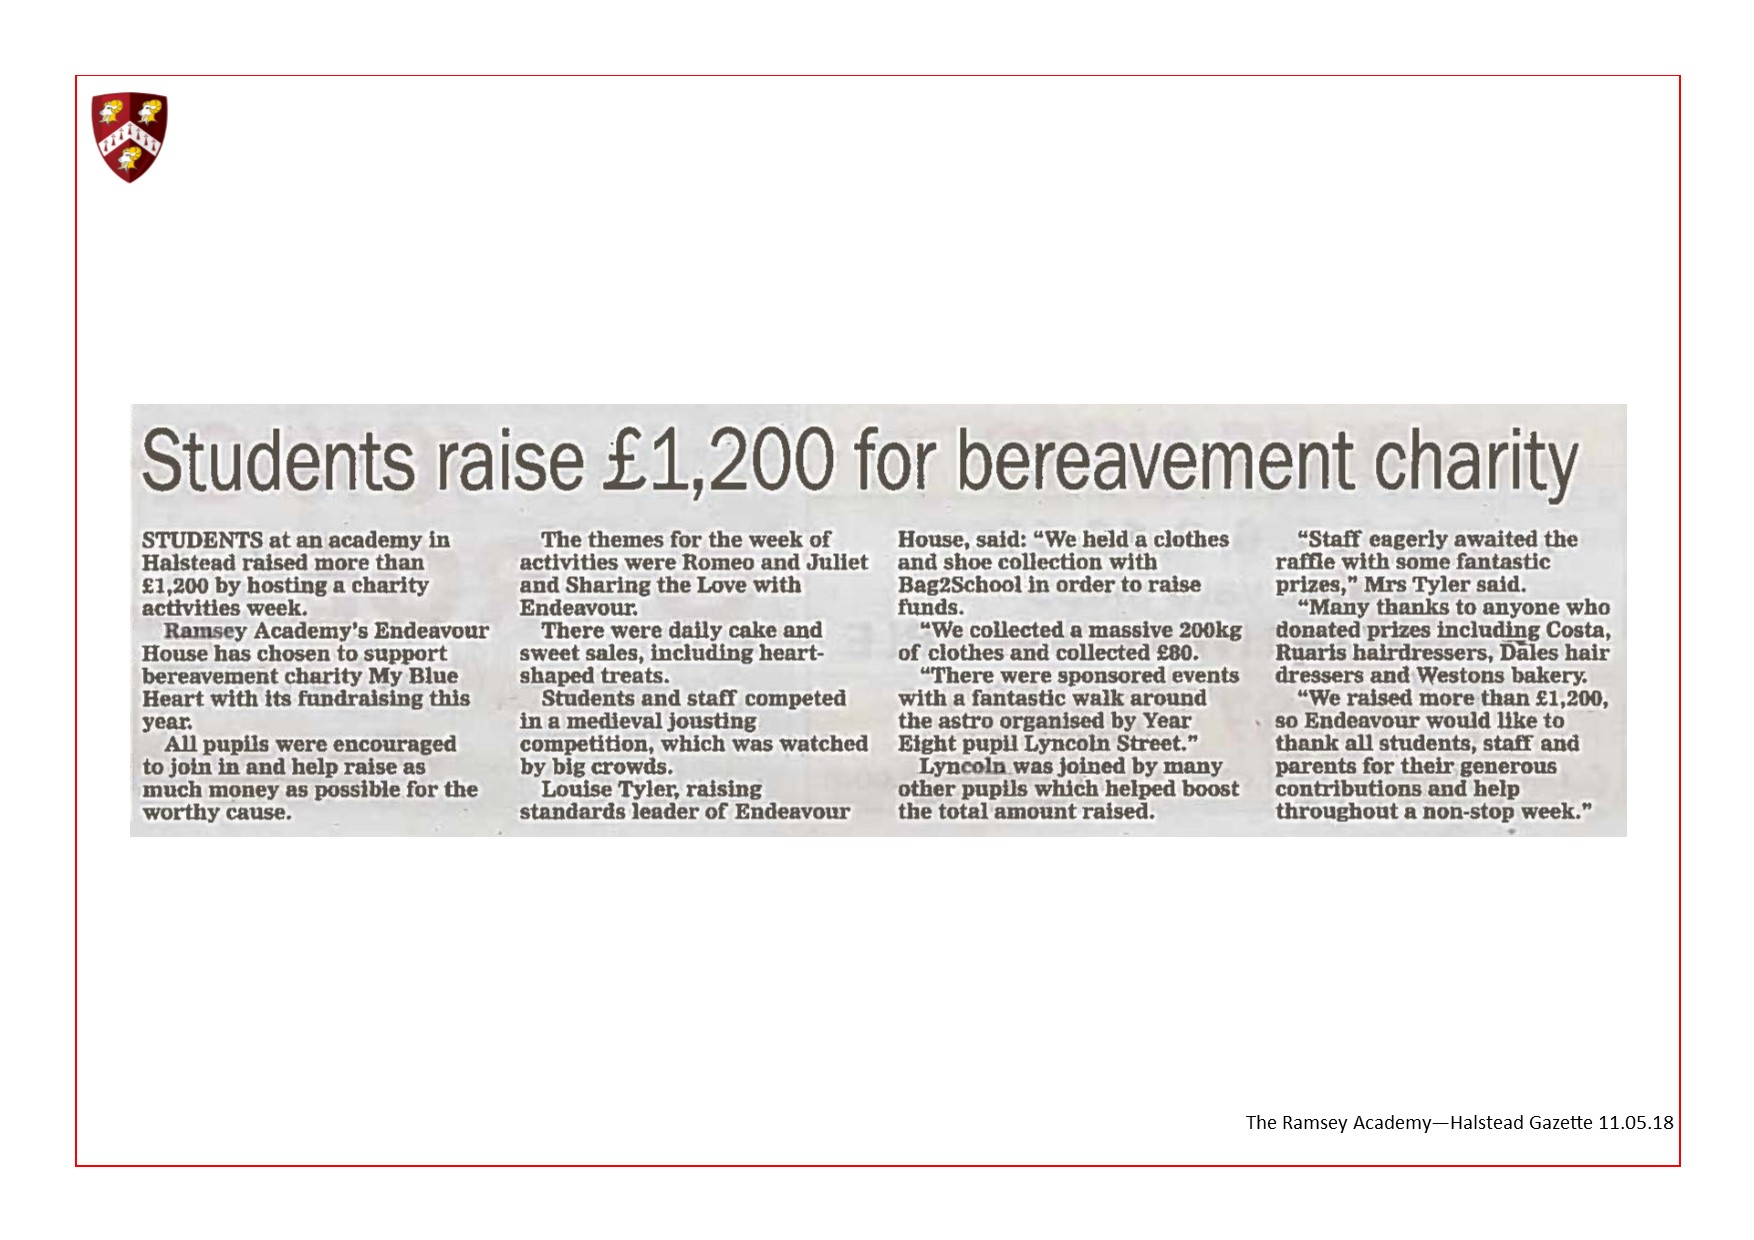 Students Raise £1,200 For Bereavement Charity 11.05.18